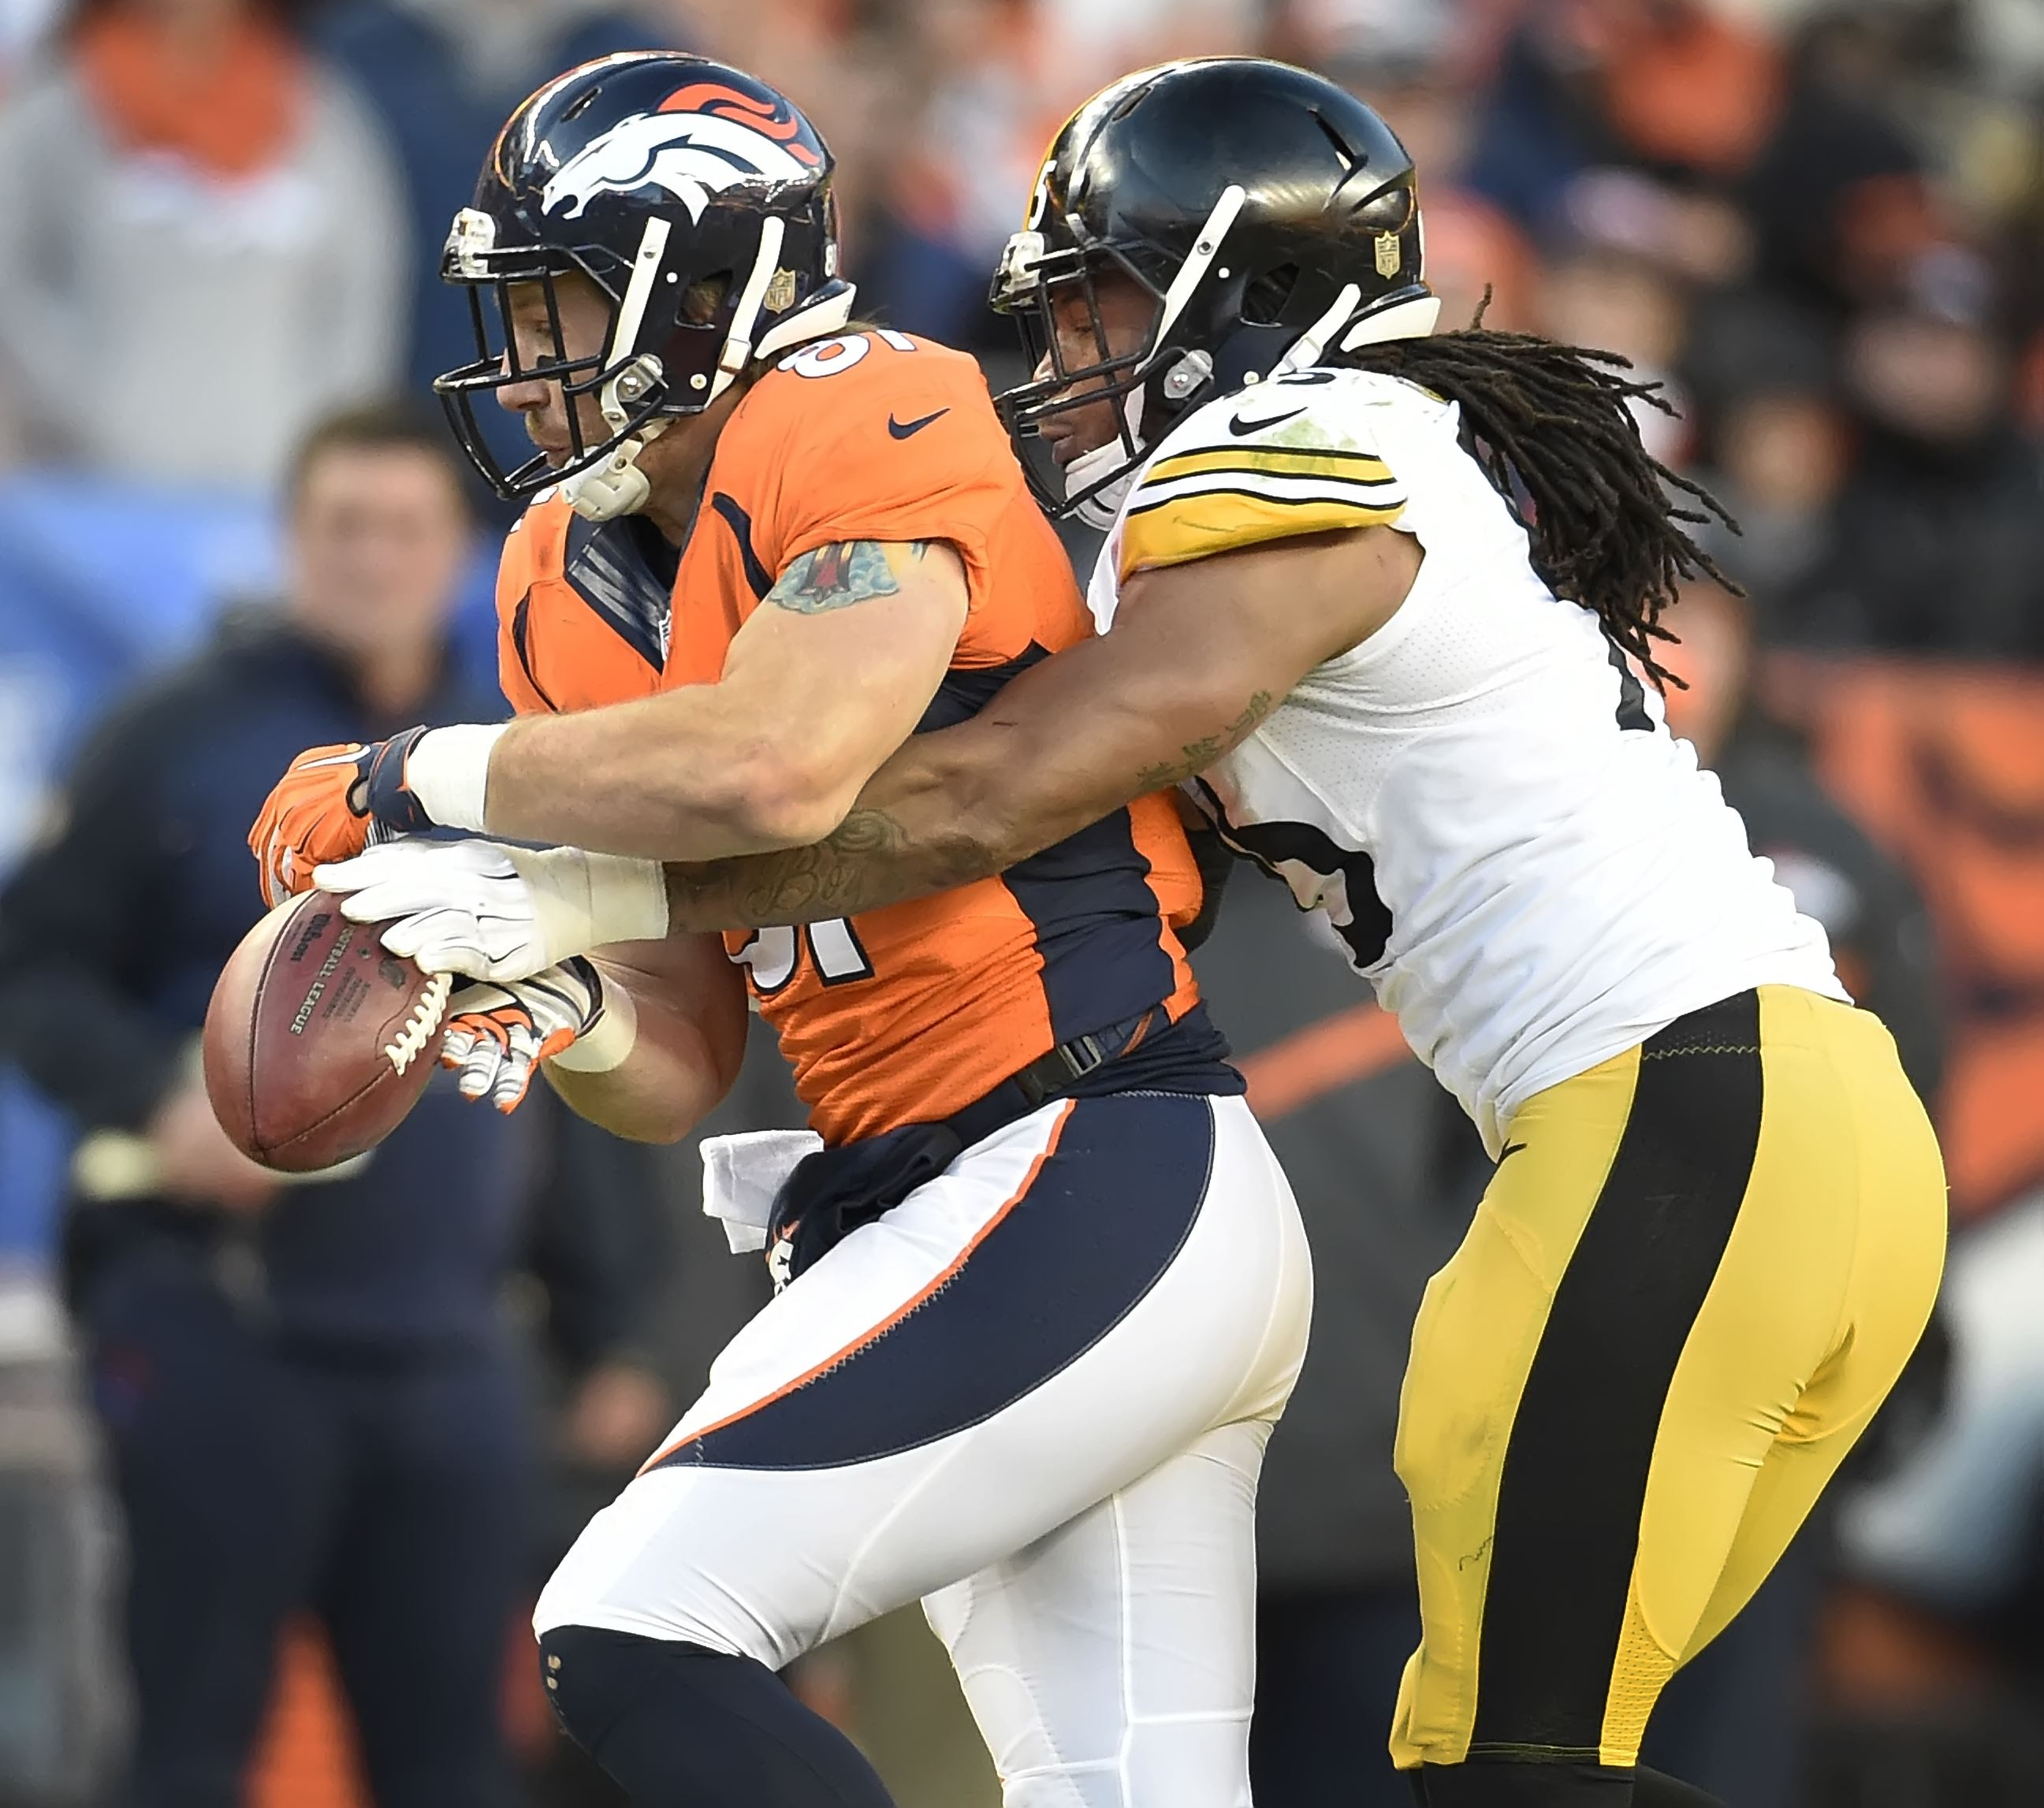 Steelers notebook: Denver rookie catches Steelers DBs out of position